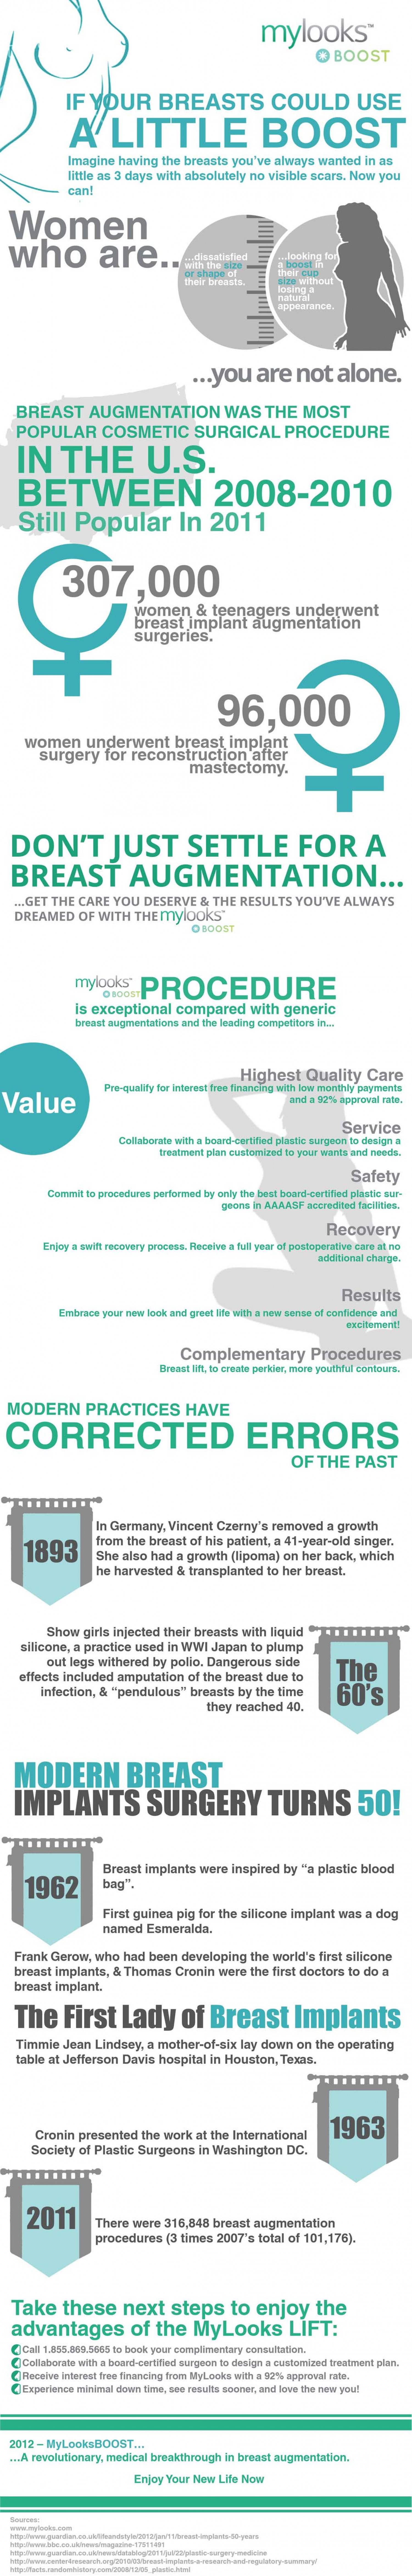 Breast implant surgery Infographic Infographic